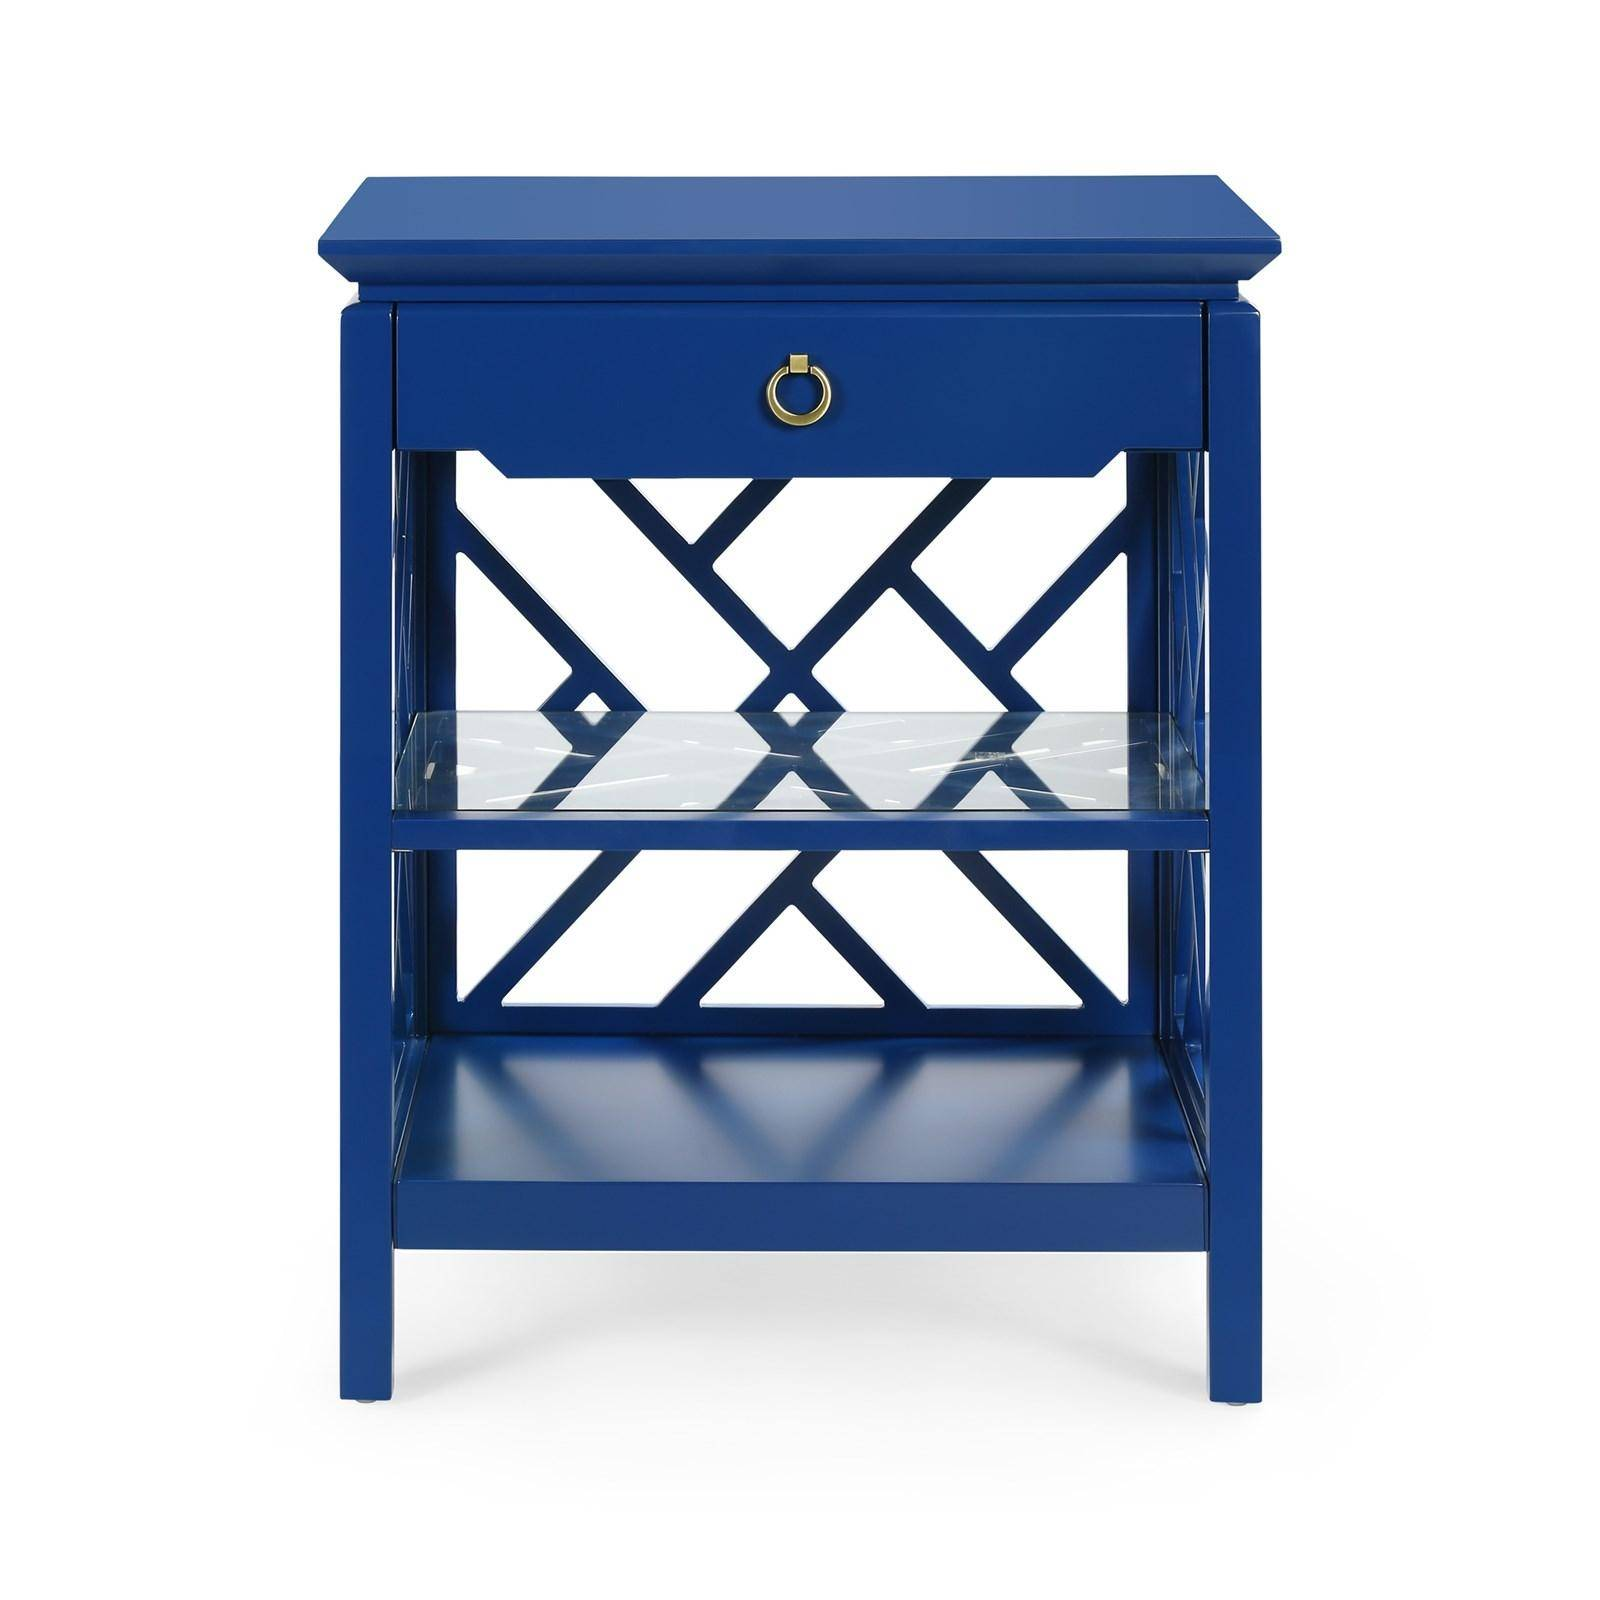 bungalow nantucket modern navy blue lacquered wood drawer side fretwork accent table reviews nan oriental style lamps outdoor drum canadian tire small industrial end patio bar